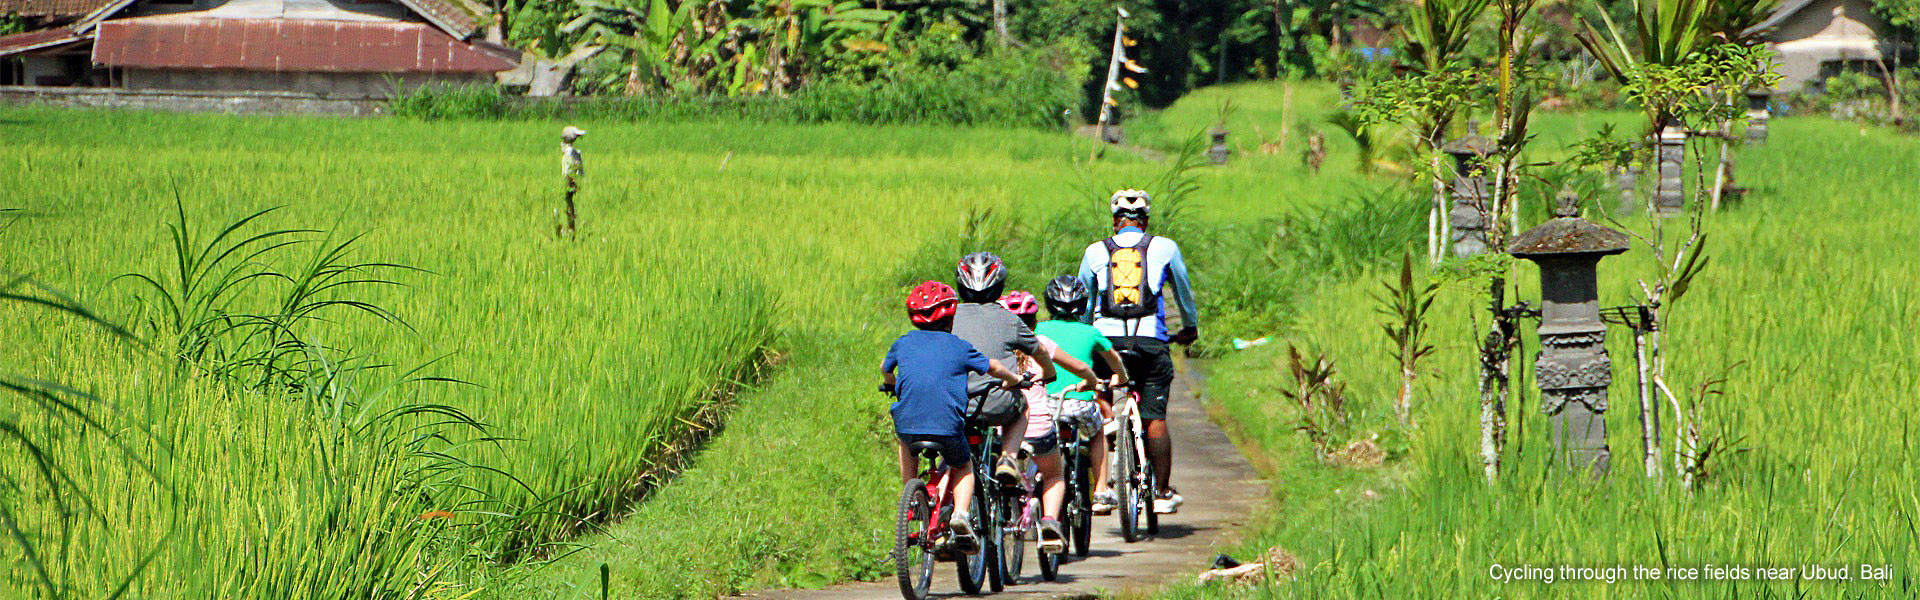 Cycling through the rice fields in Bali, Indonesia